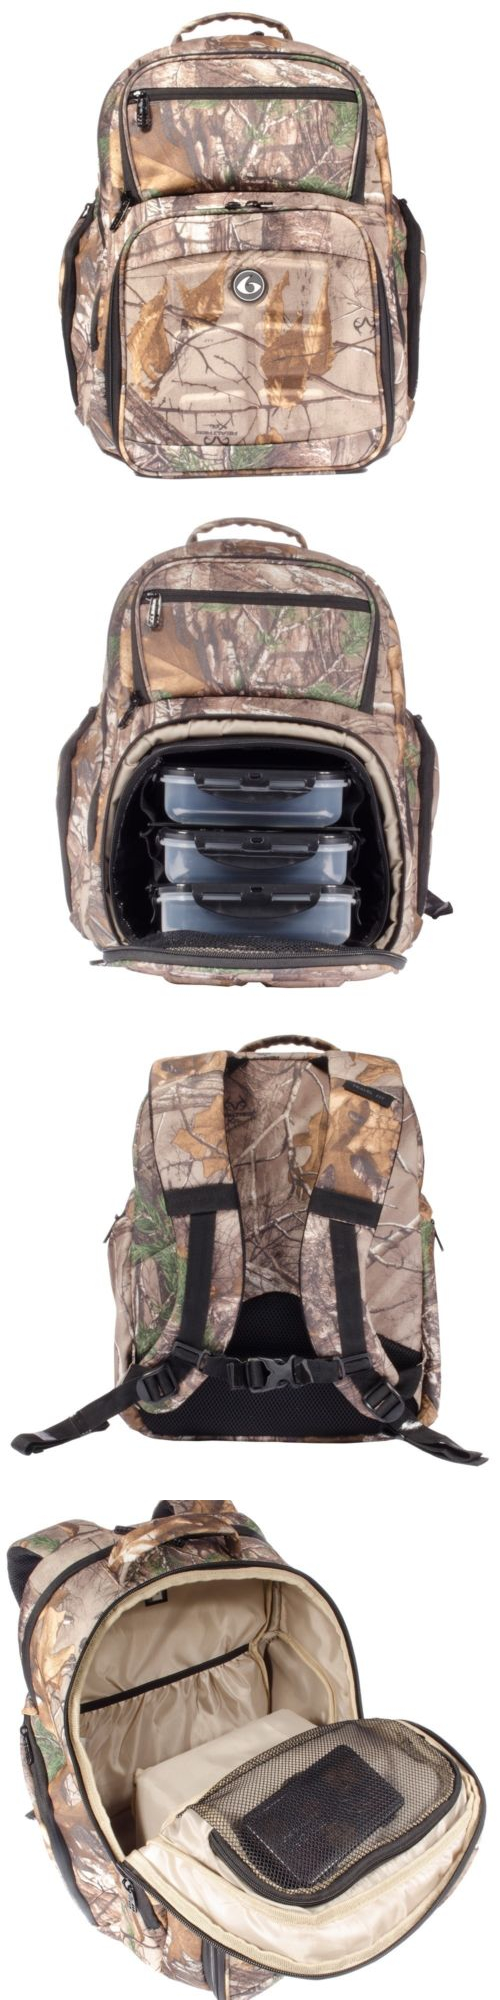 03bd57dc39 Gym Bags 68816  6 Pack Fitness Expedition 300 Realtree Camo Meal Management  Bag Limited Edition